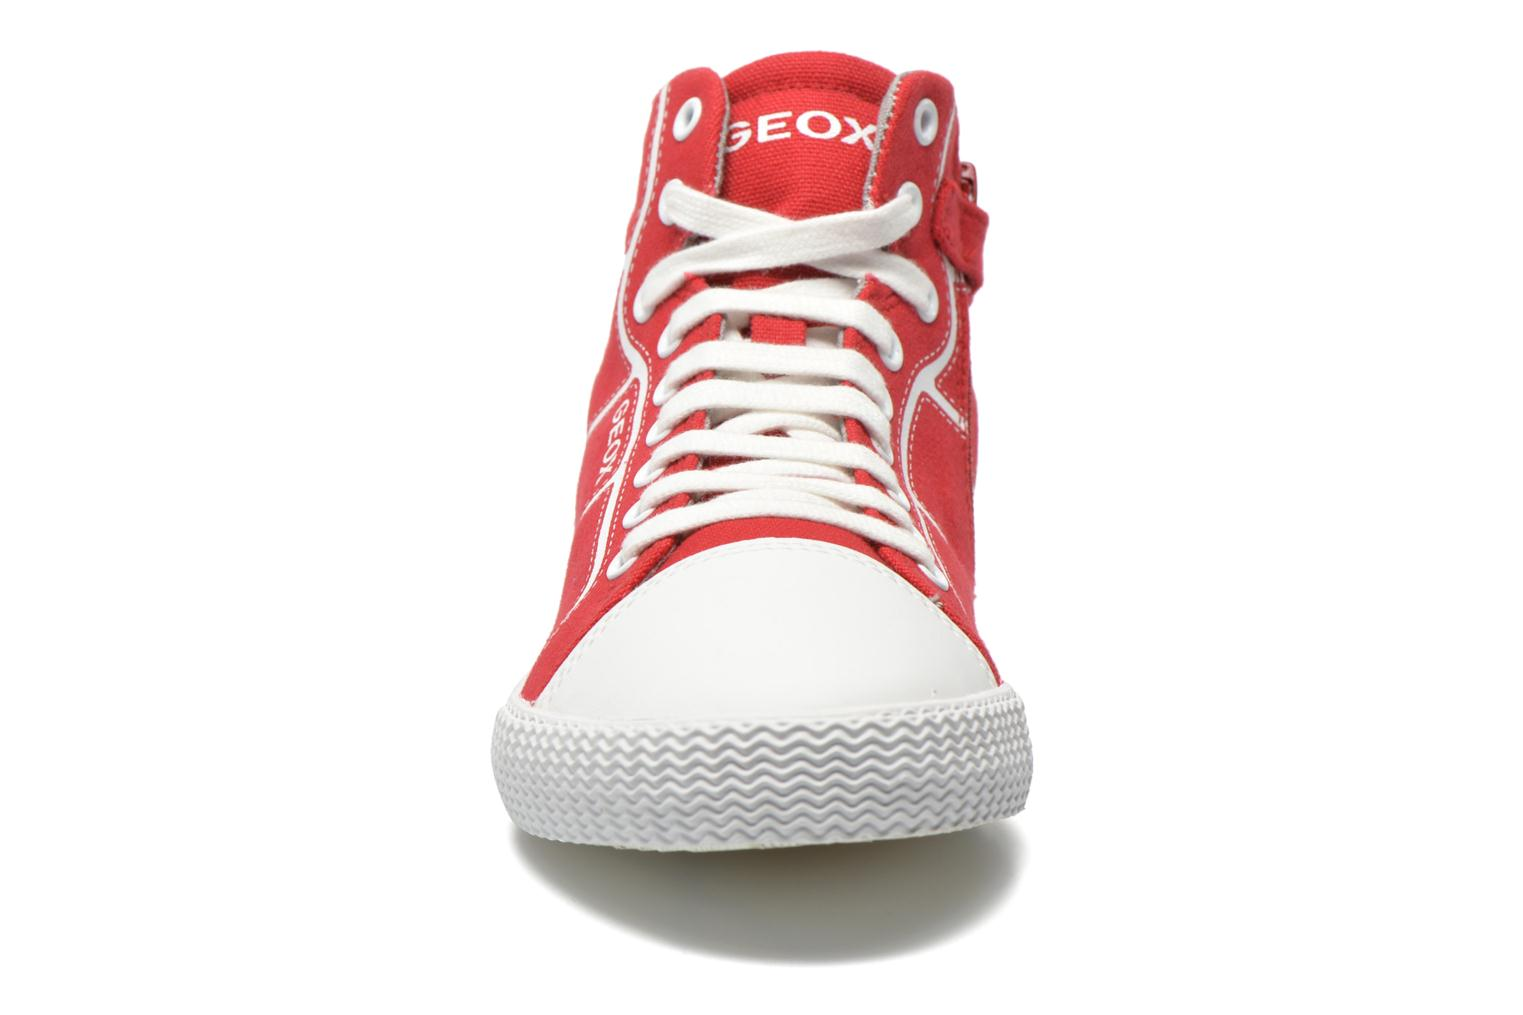 Red Boy Rouge Smart J J52A8D Geox YCxwxSq71O